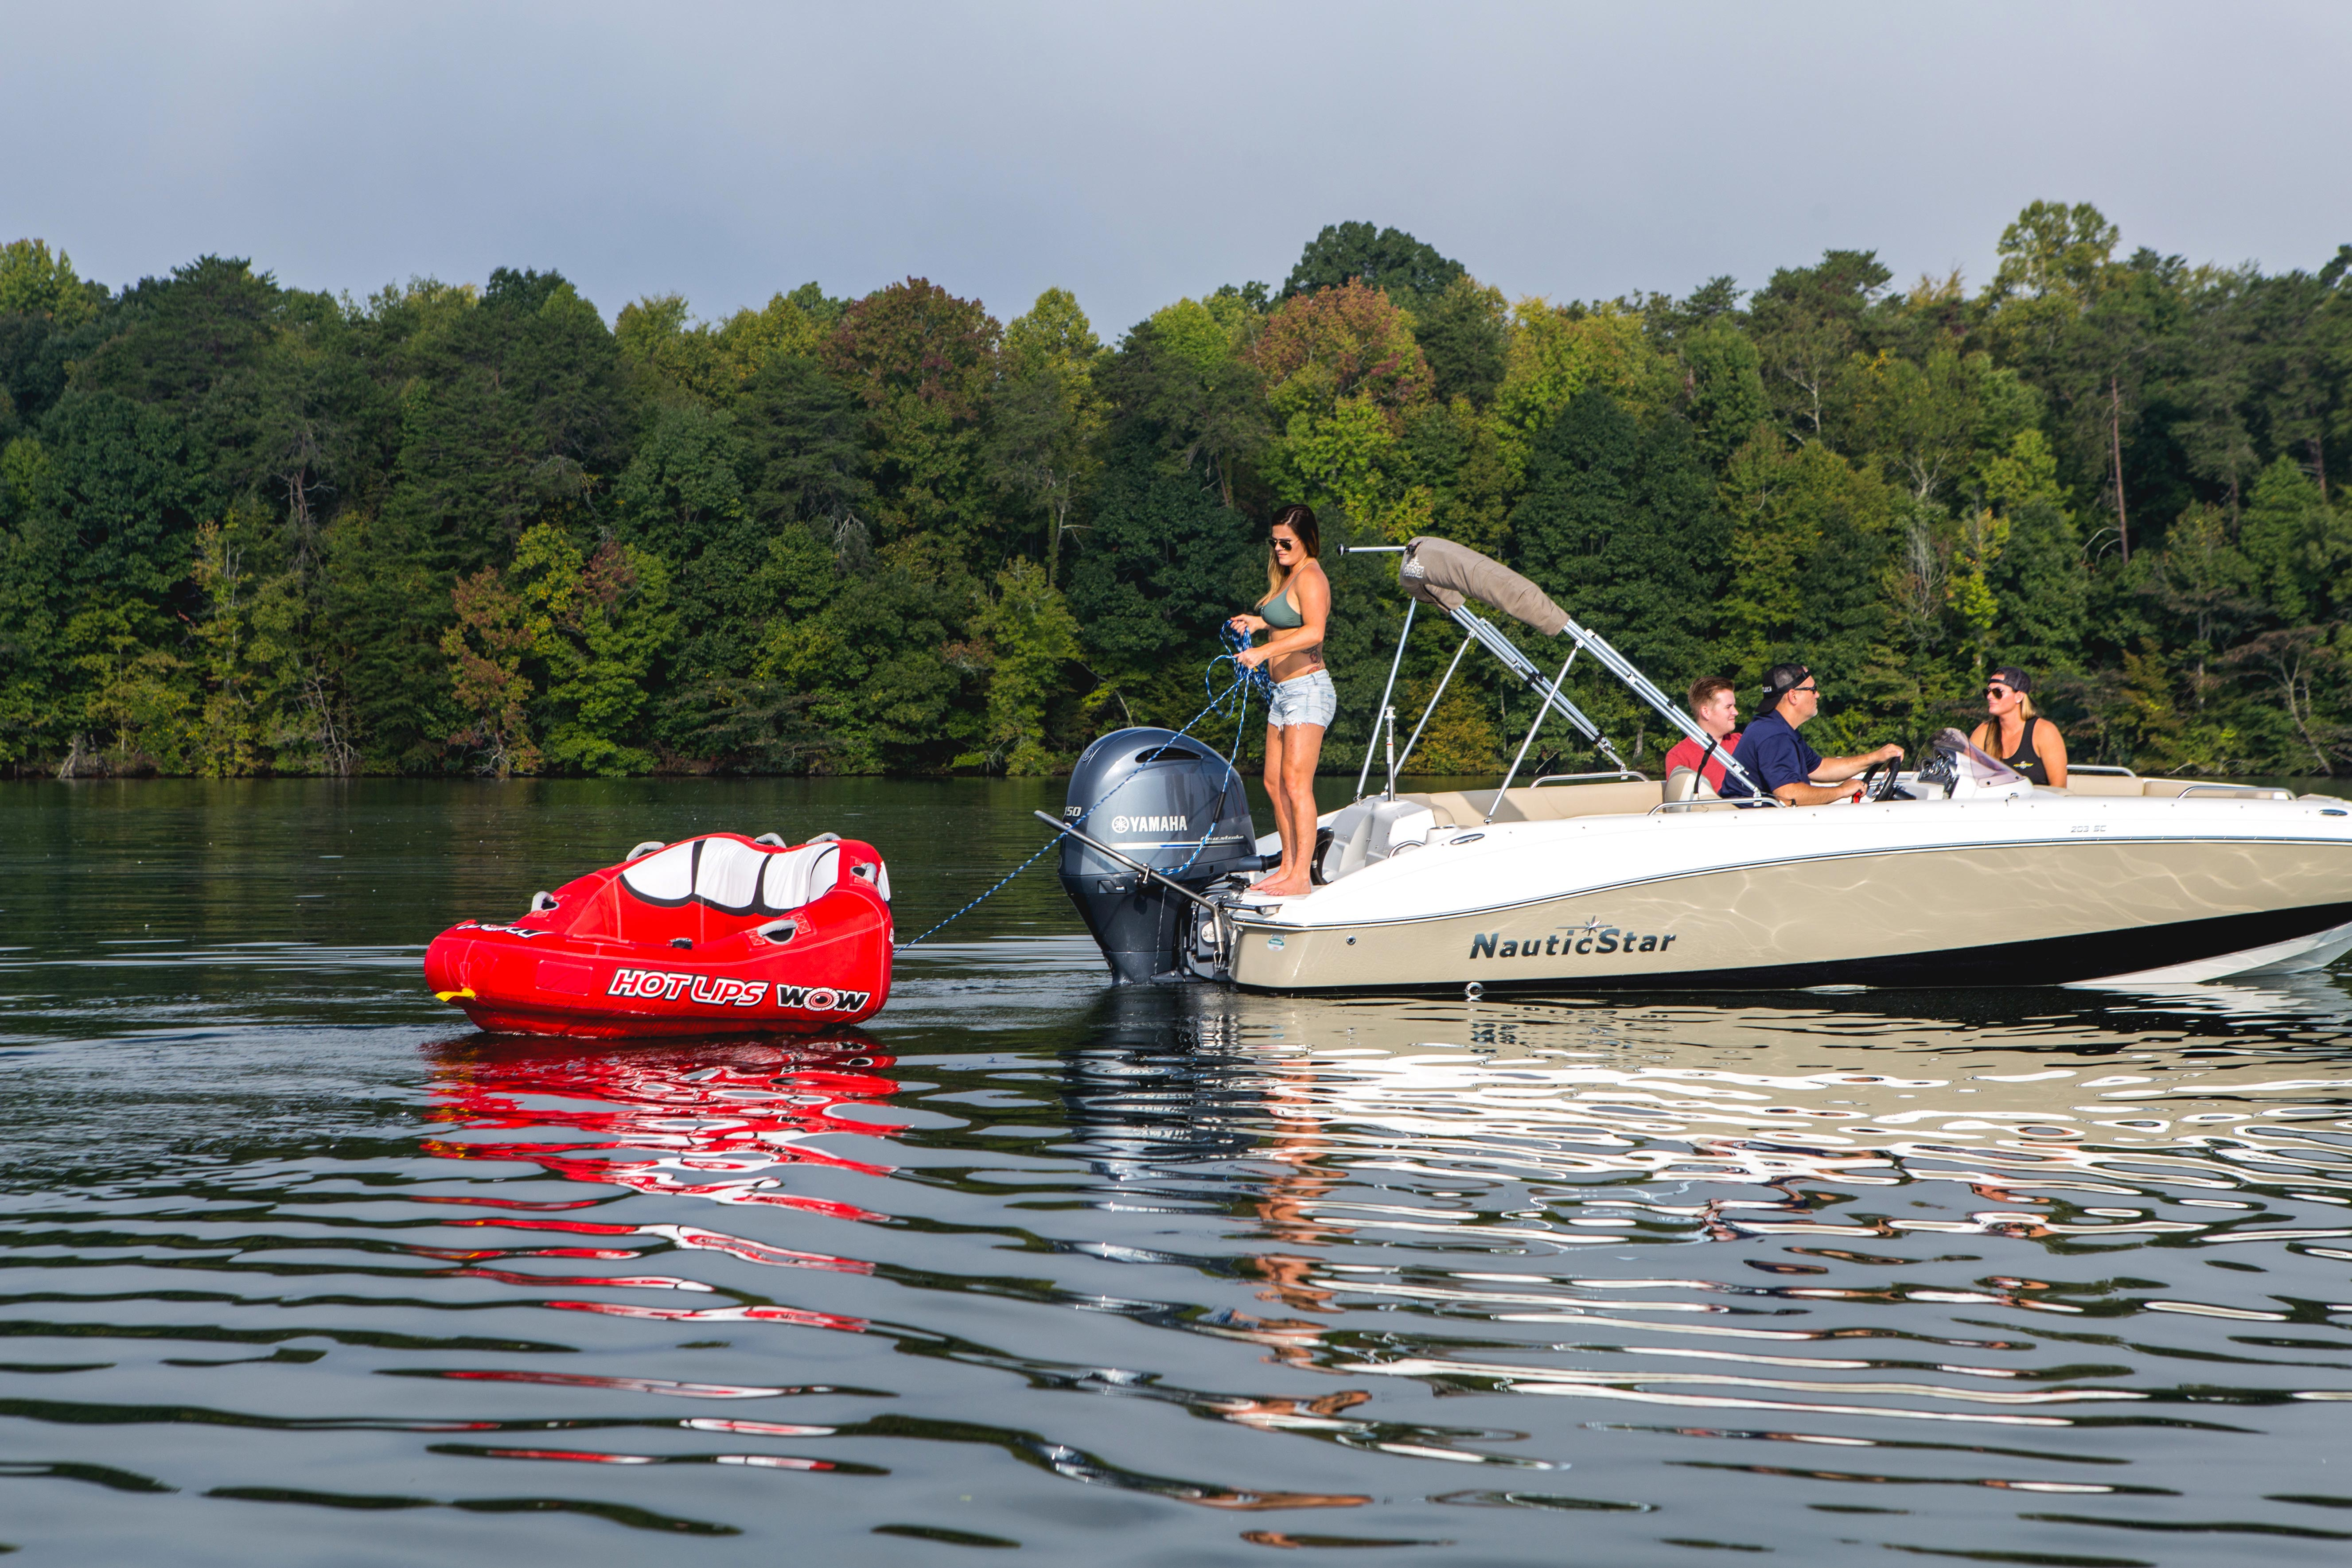 Turboswing Ski Tow Bar For Outboards Pull Tubes Wakeboards And More